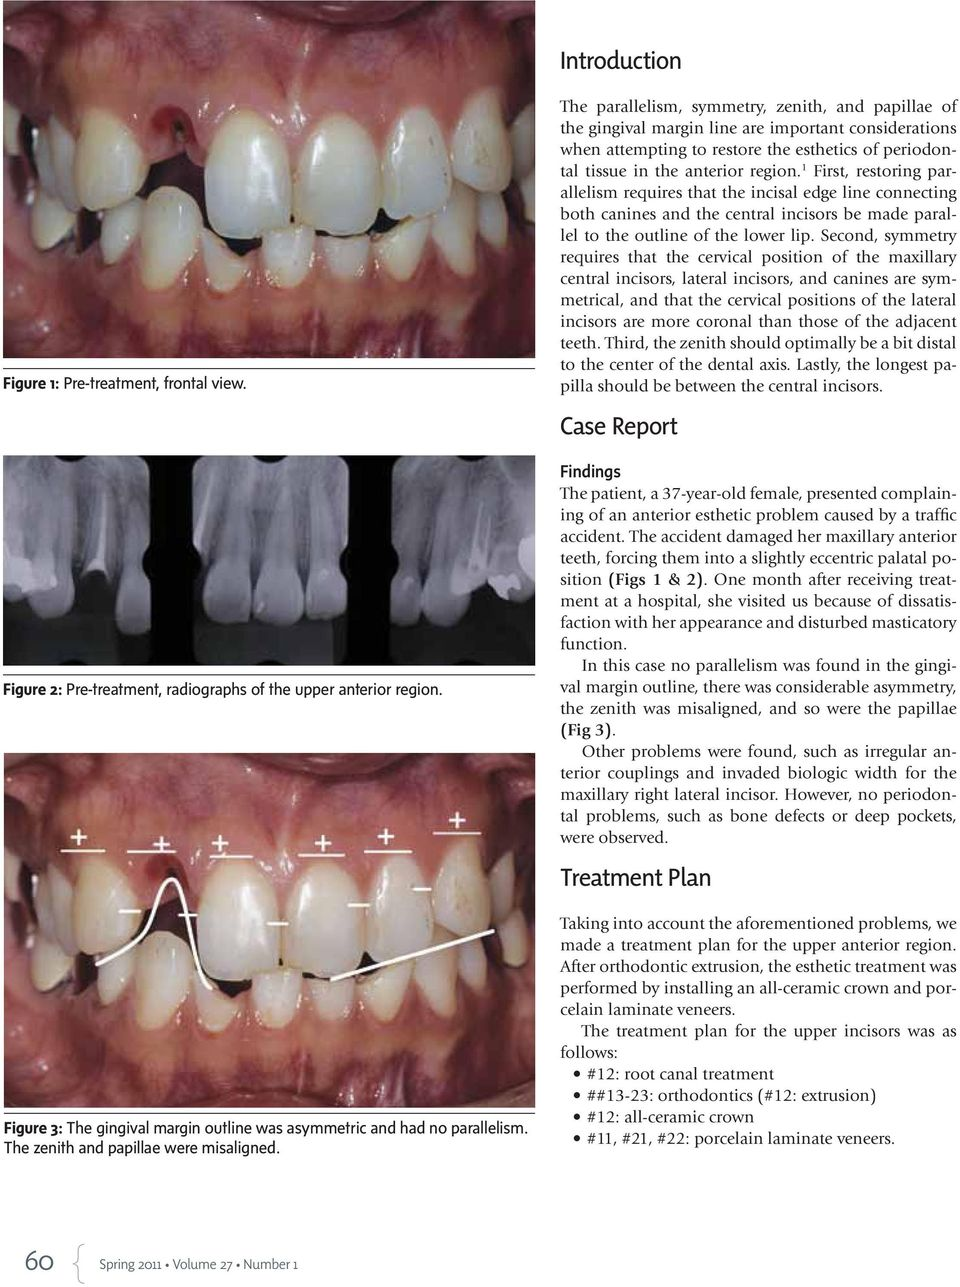 1 First, restoring parallelism requires that the incisal edge line connecting both canines and the central incisors be made parallel to the outline of the lower lip.